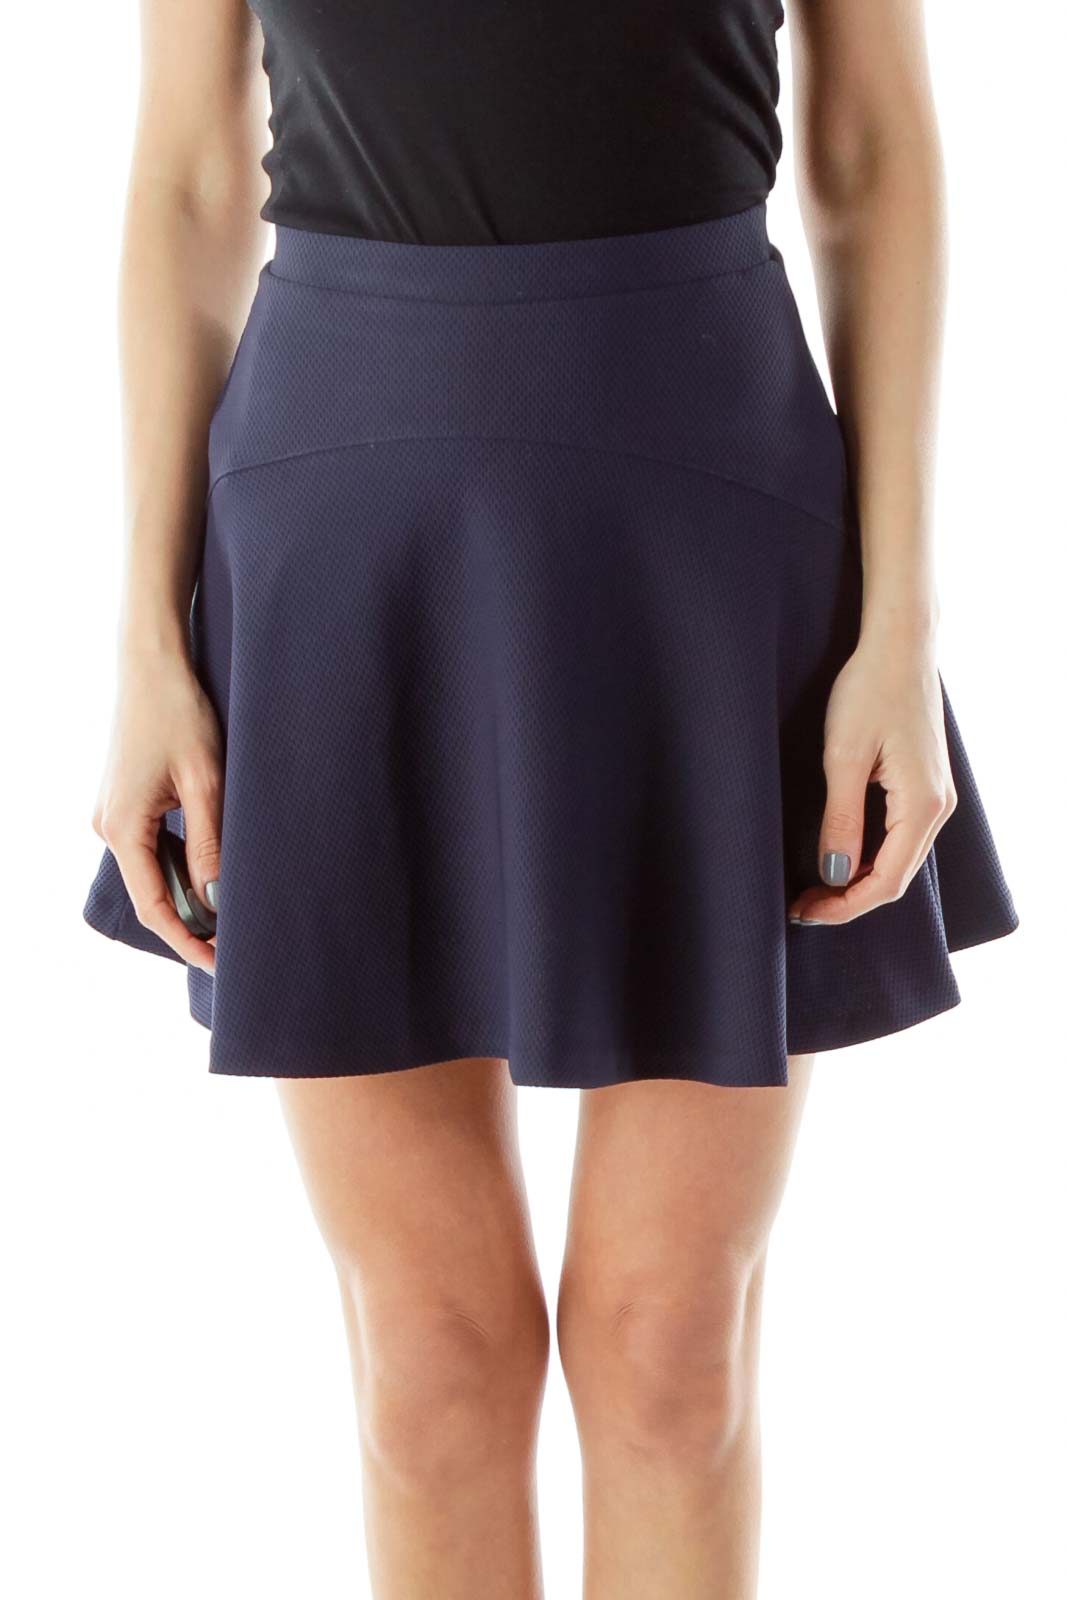 Black Flared Skirt with Hole Details Front